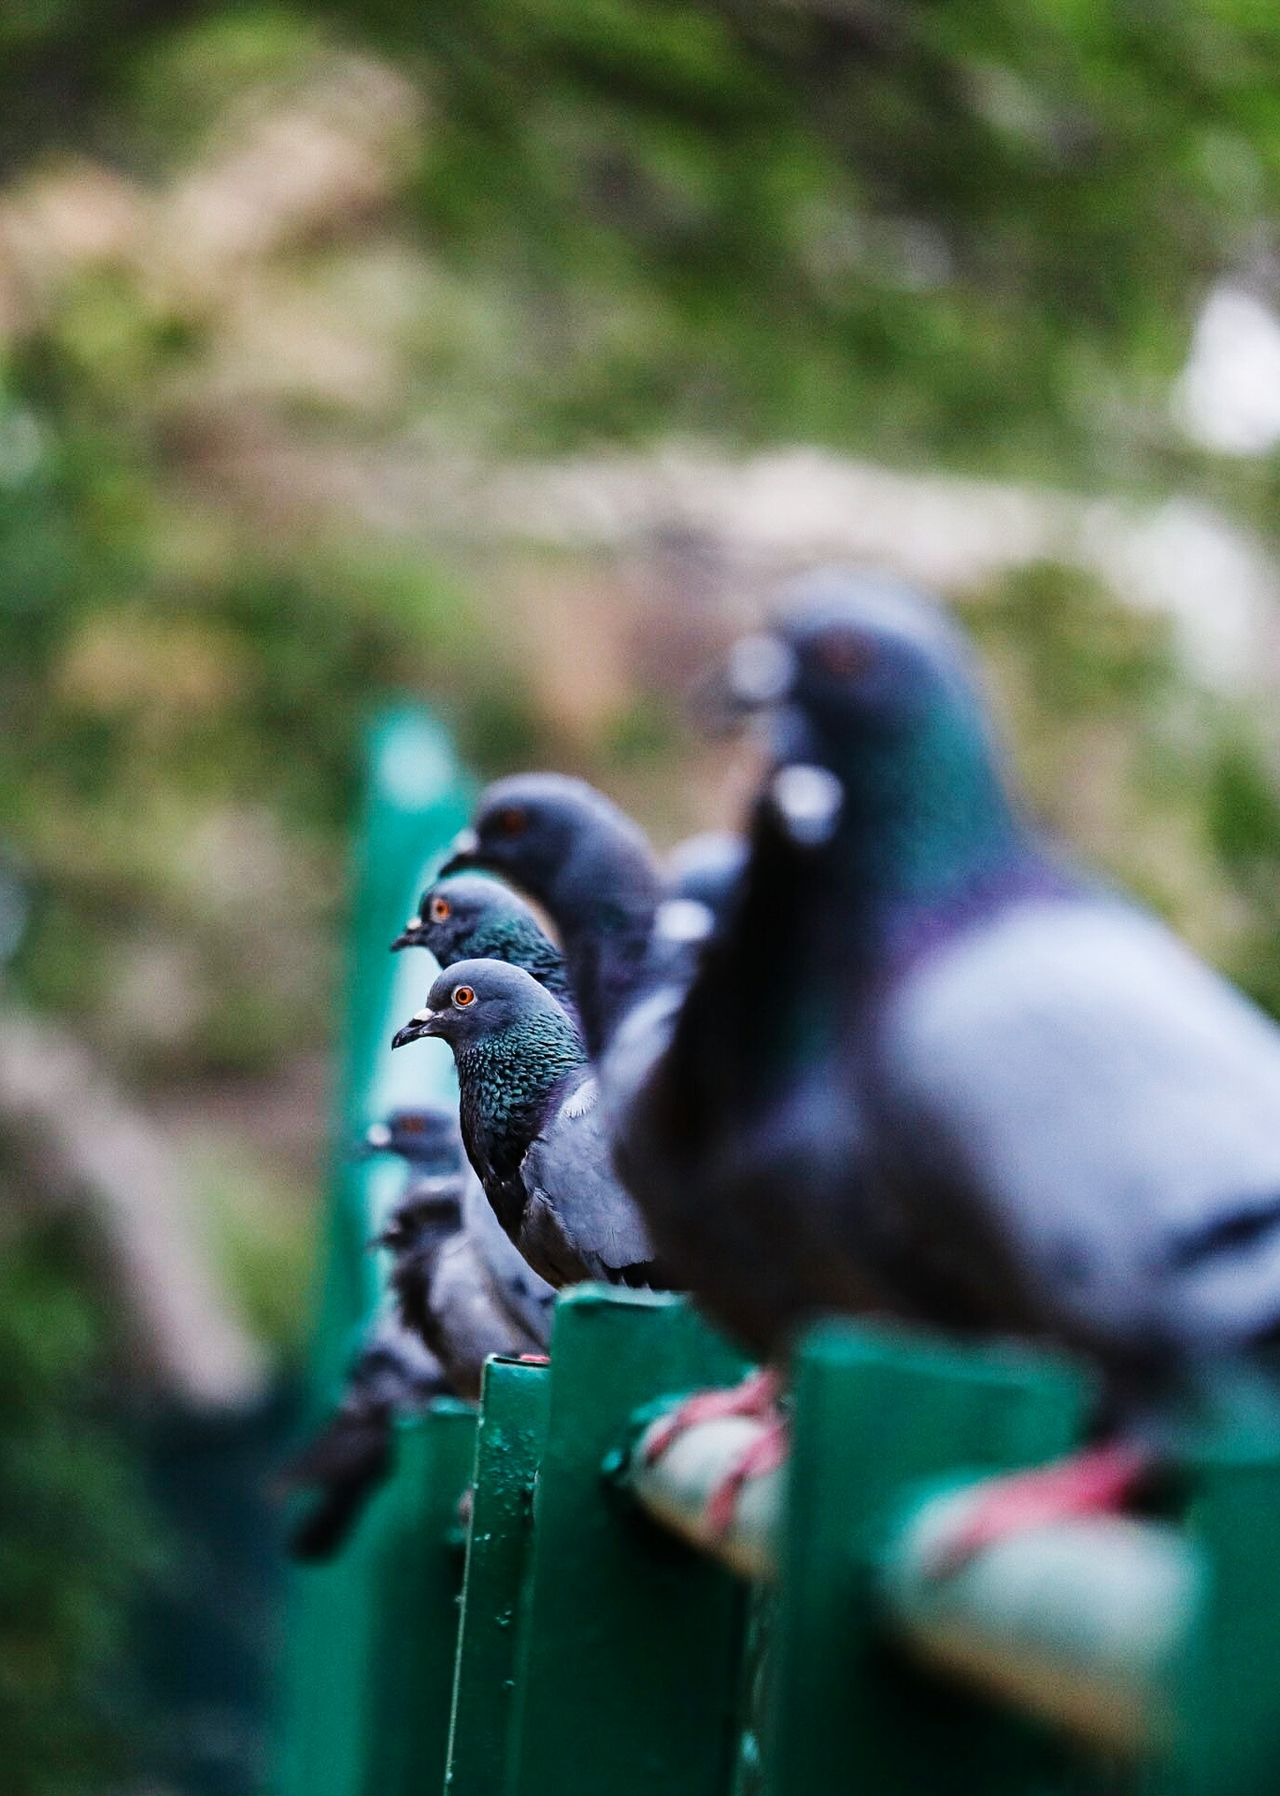 Pigeons Pigeonslife Pigeons Birds Pigeons Everywhere Close-up Animal Themes Animal Wildlife Bird Outdoors Animals In The Wild No People Bird Photography Bird Watching Colourfull Birds_collection Living Organism Purple Bird Canon 750d